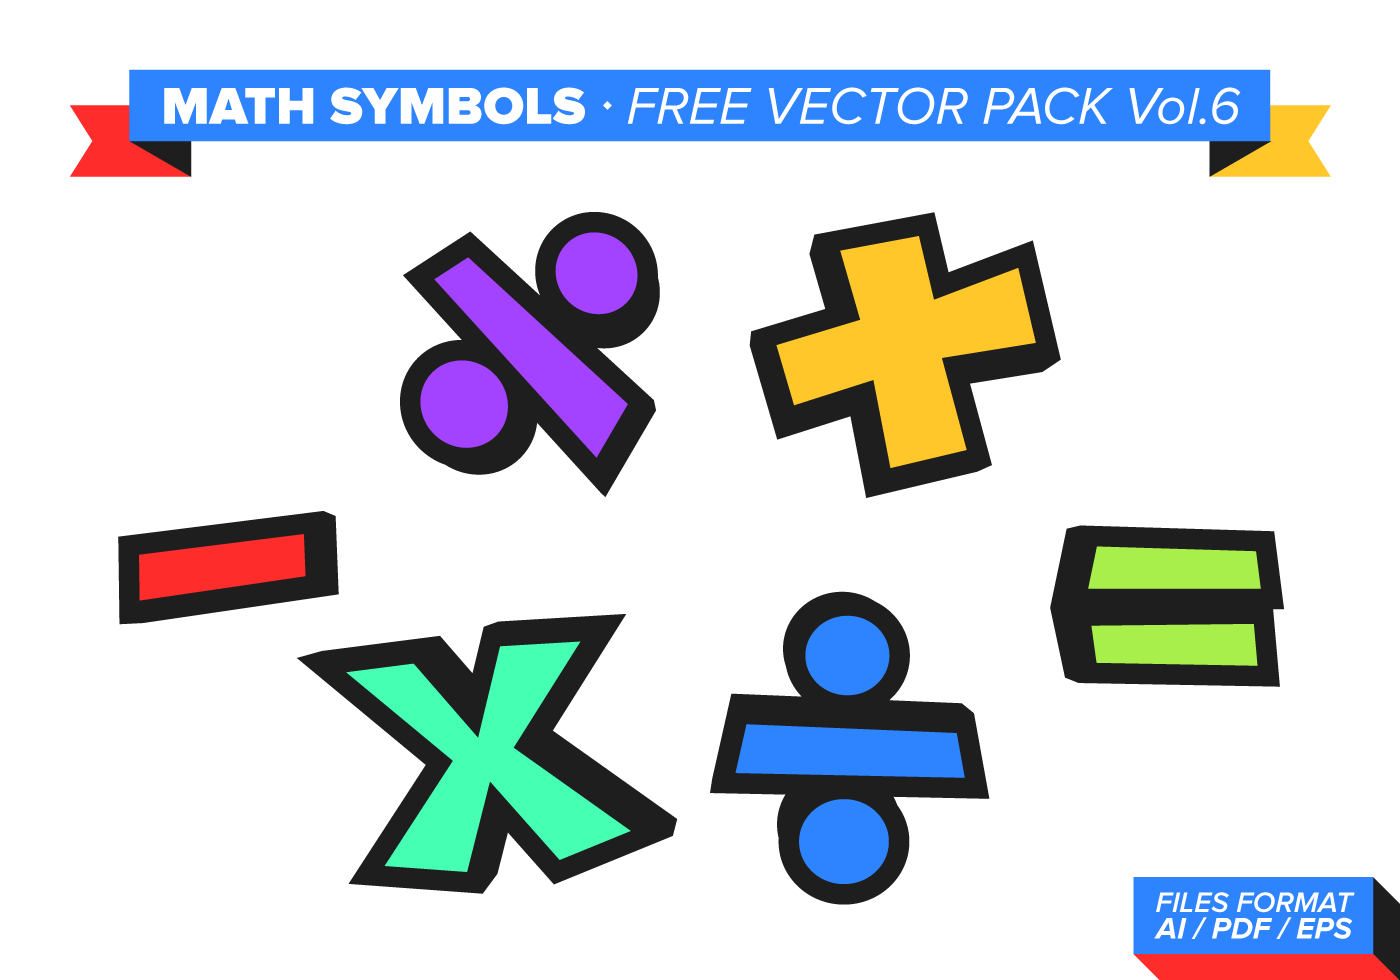 Math Symbols Free Vector Pack Vol 6